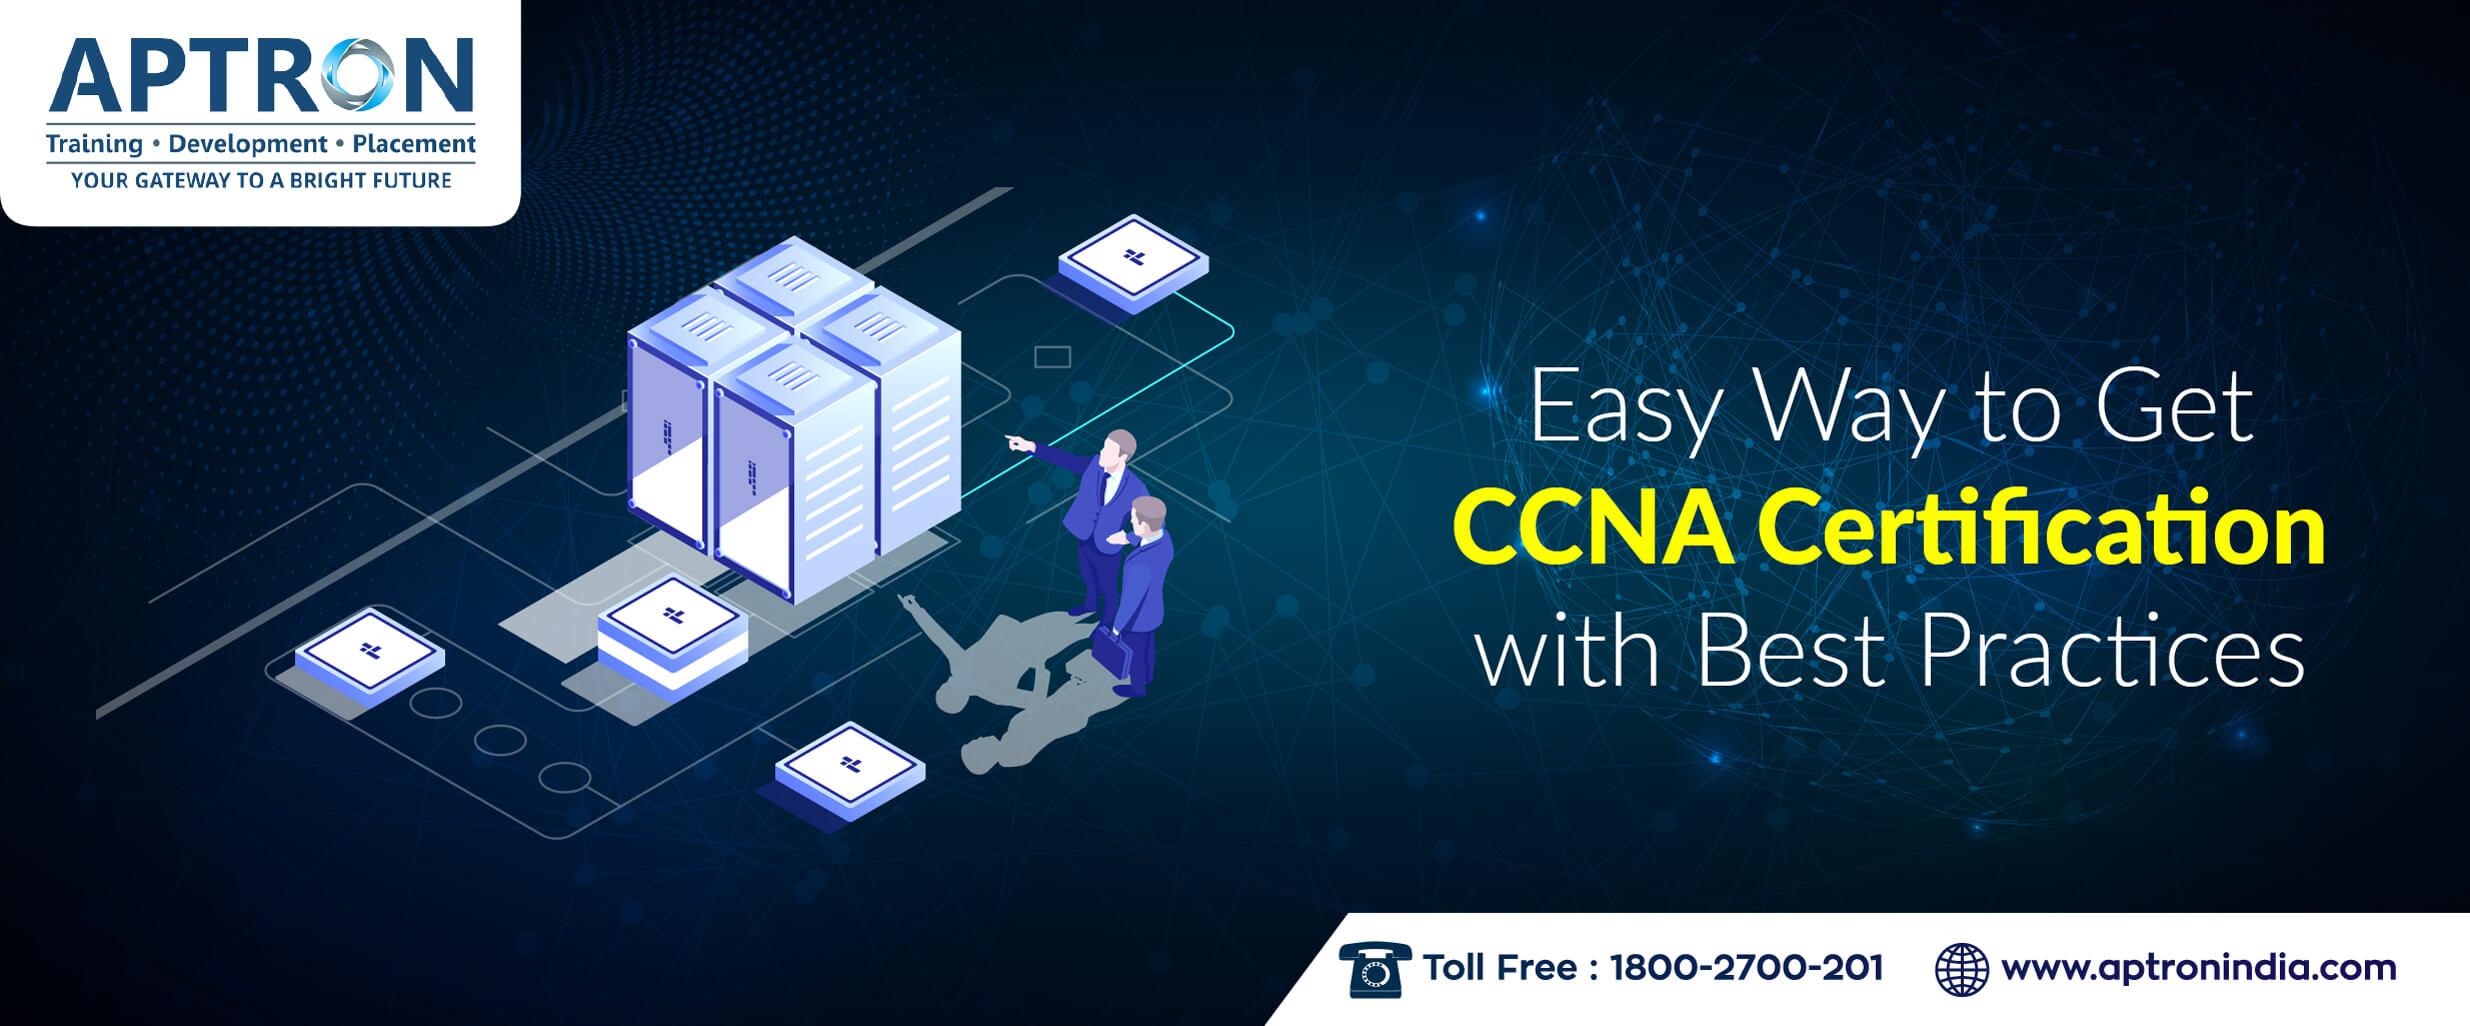 Easy Way to get CCNA Certification with Best Practices